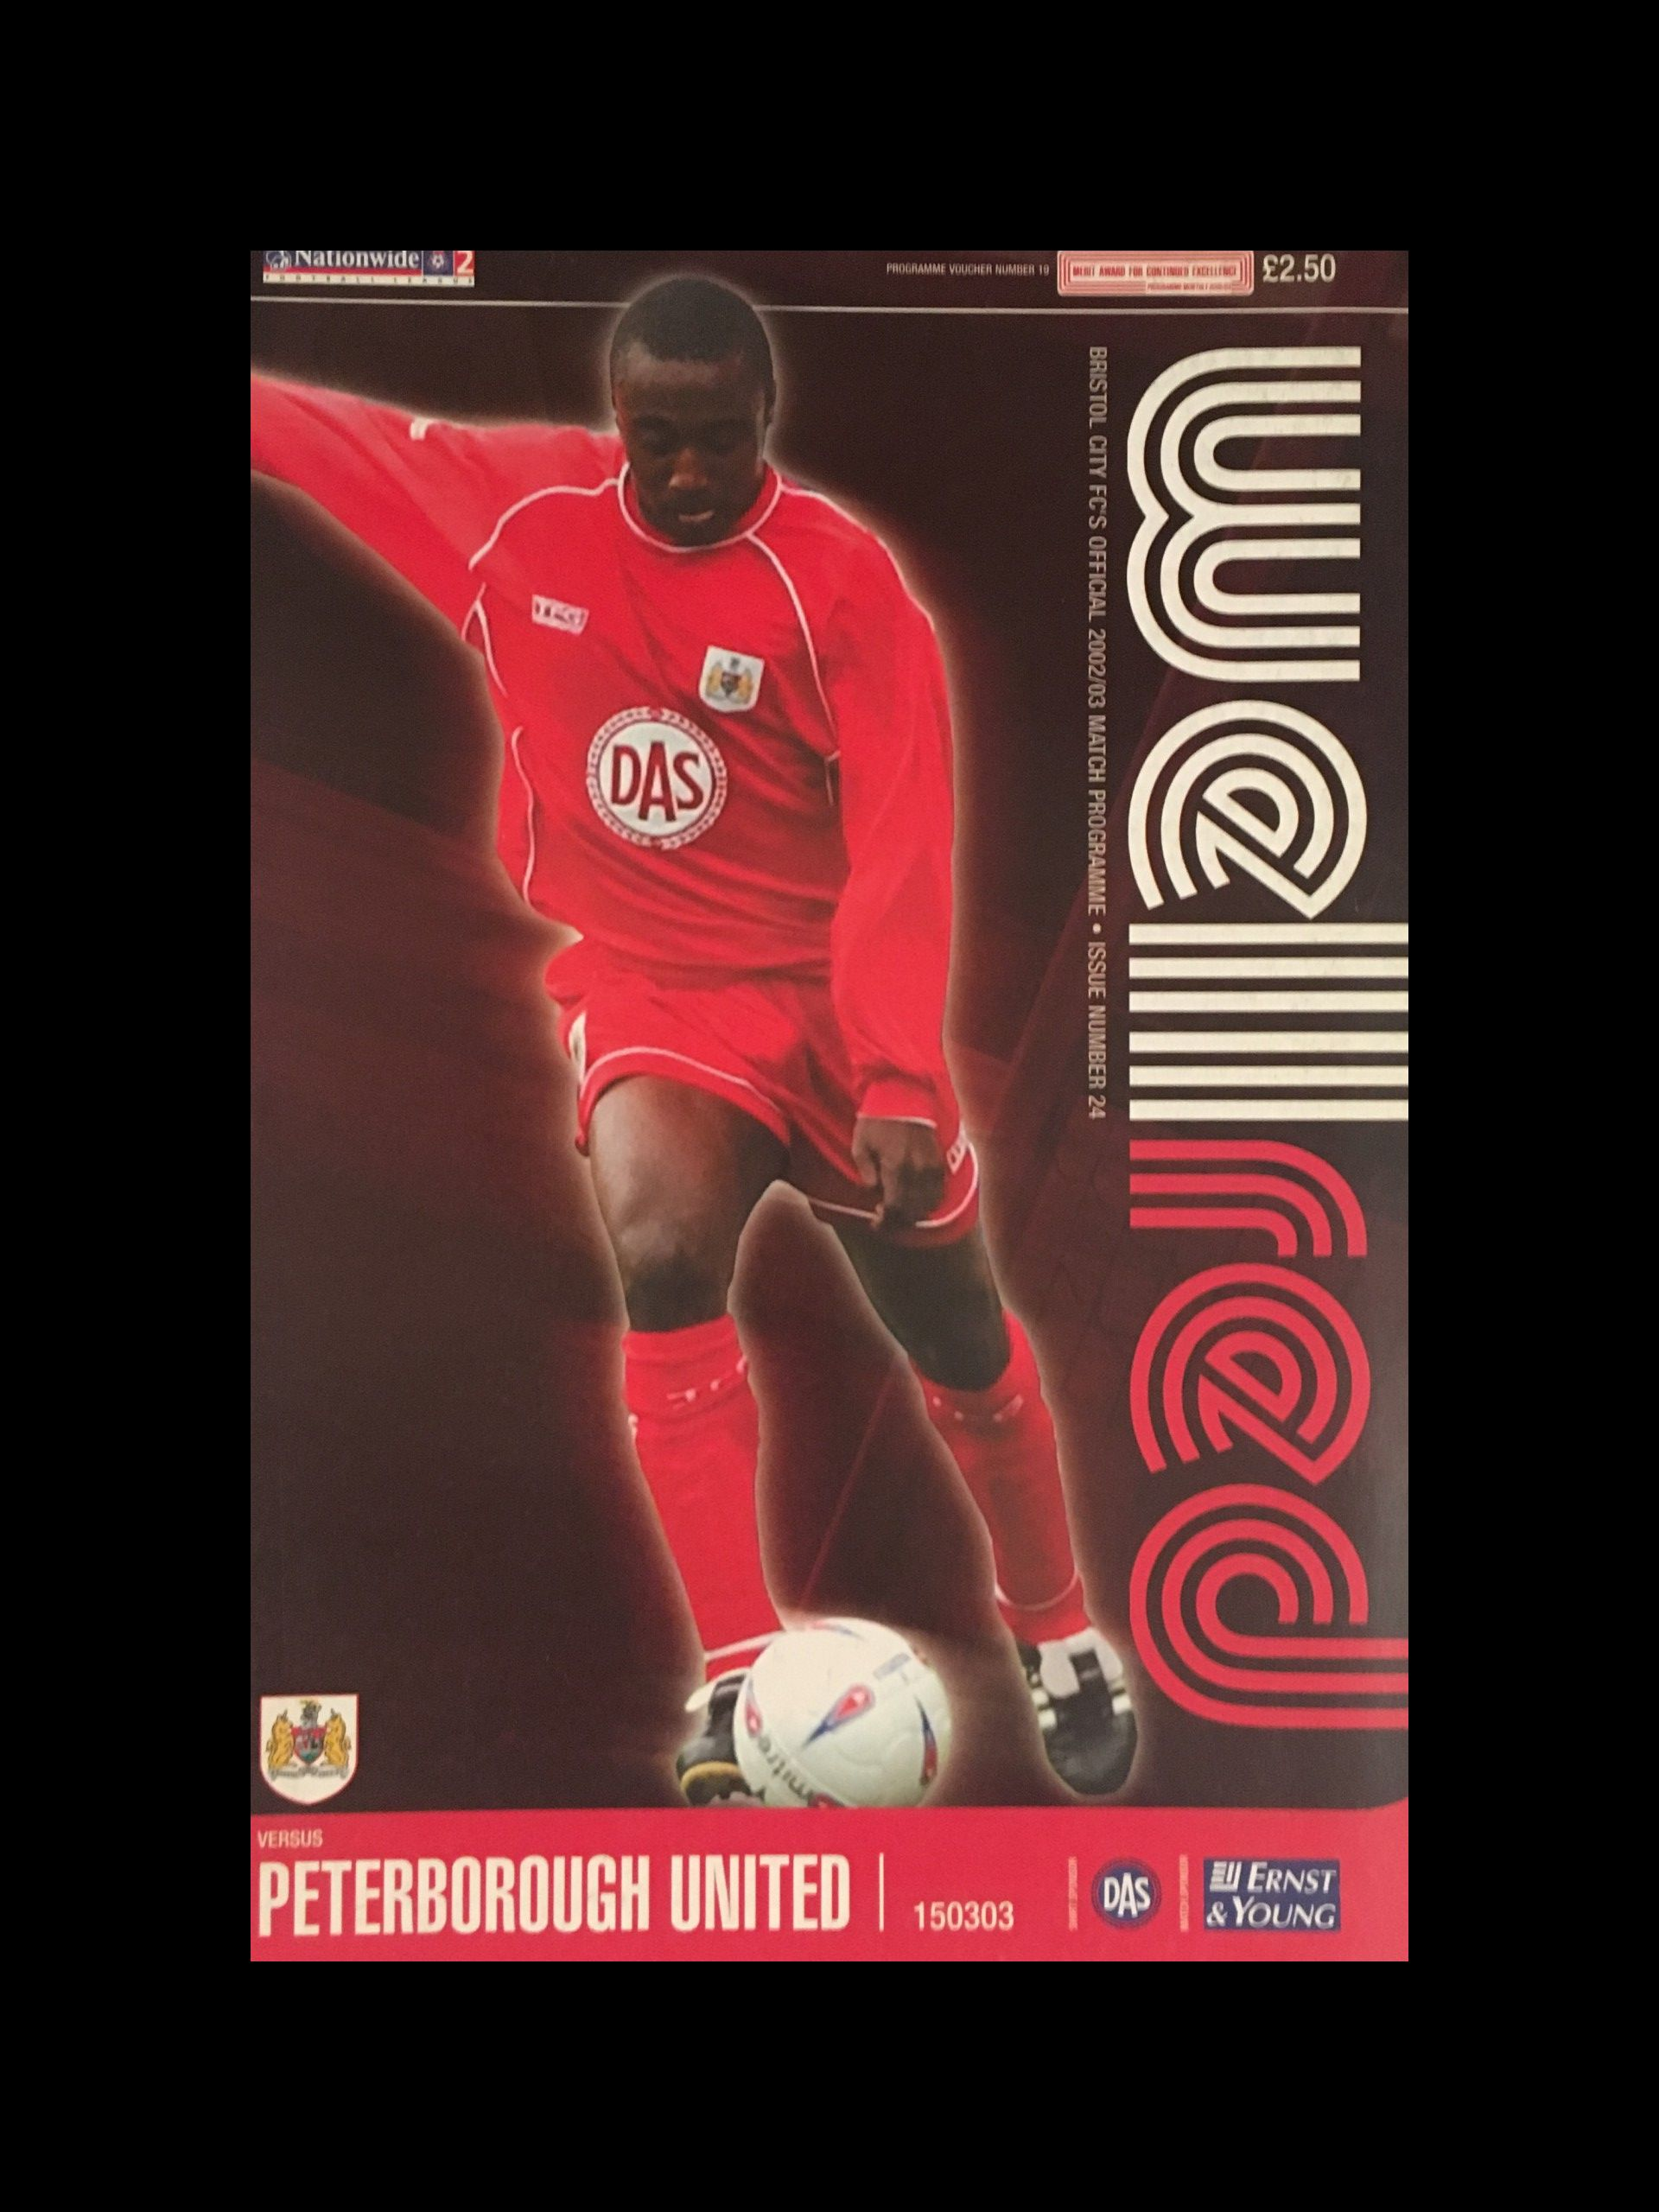 Bristol City v Peterborough United 15-03-2003 Programme